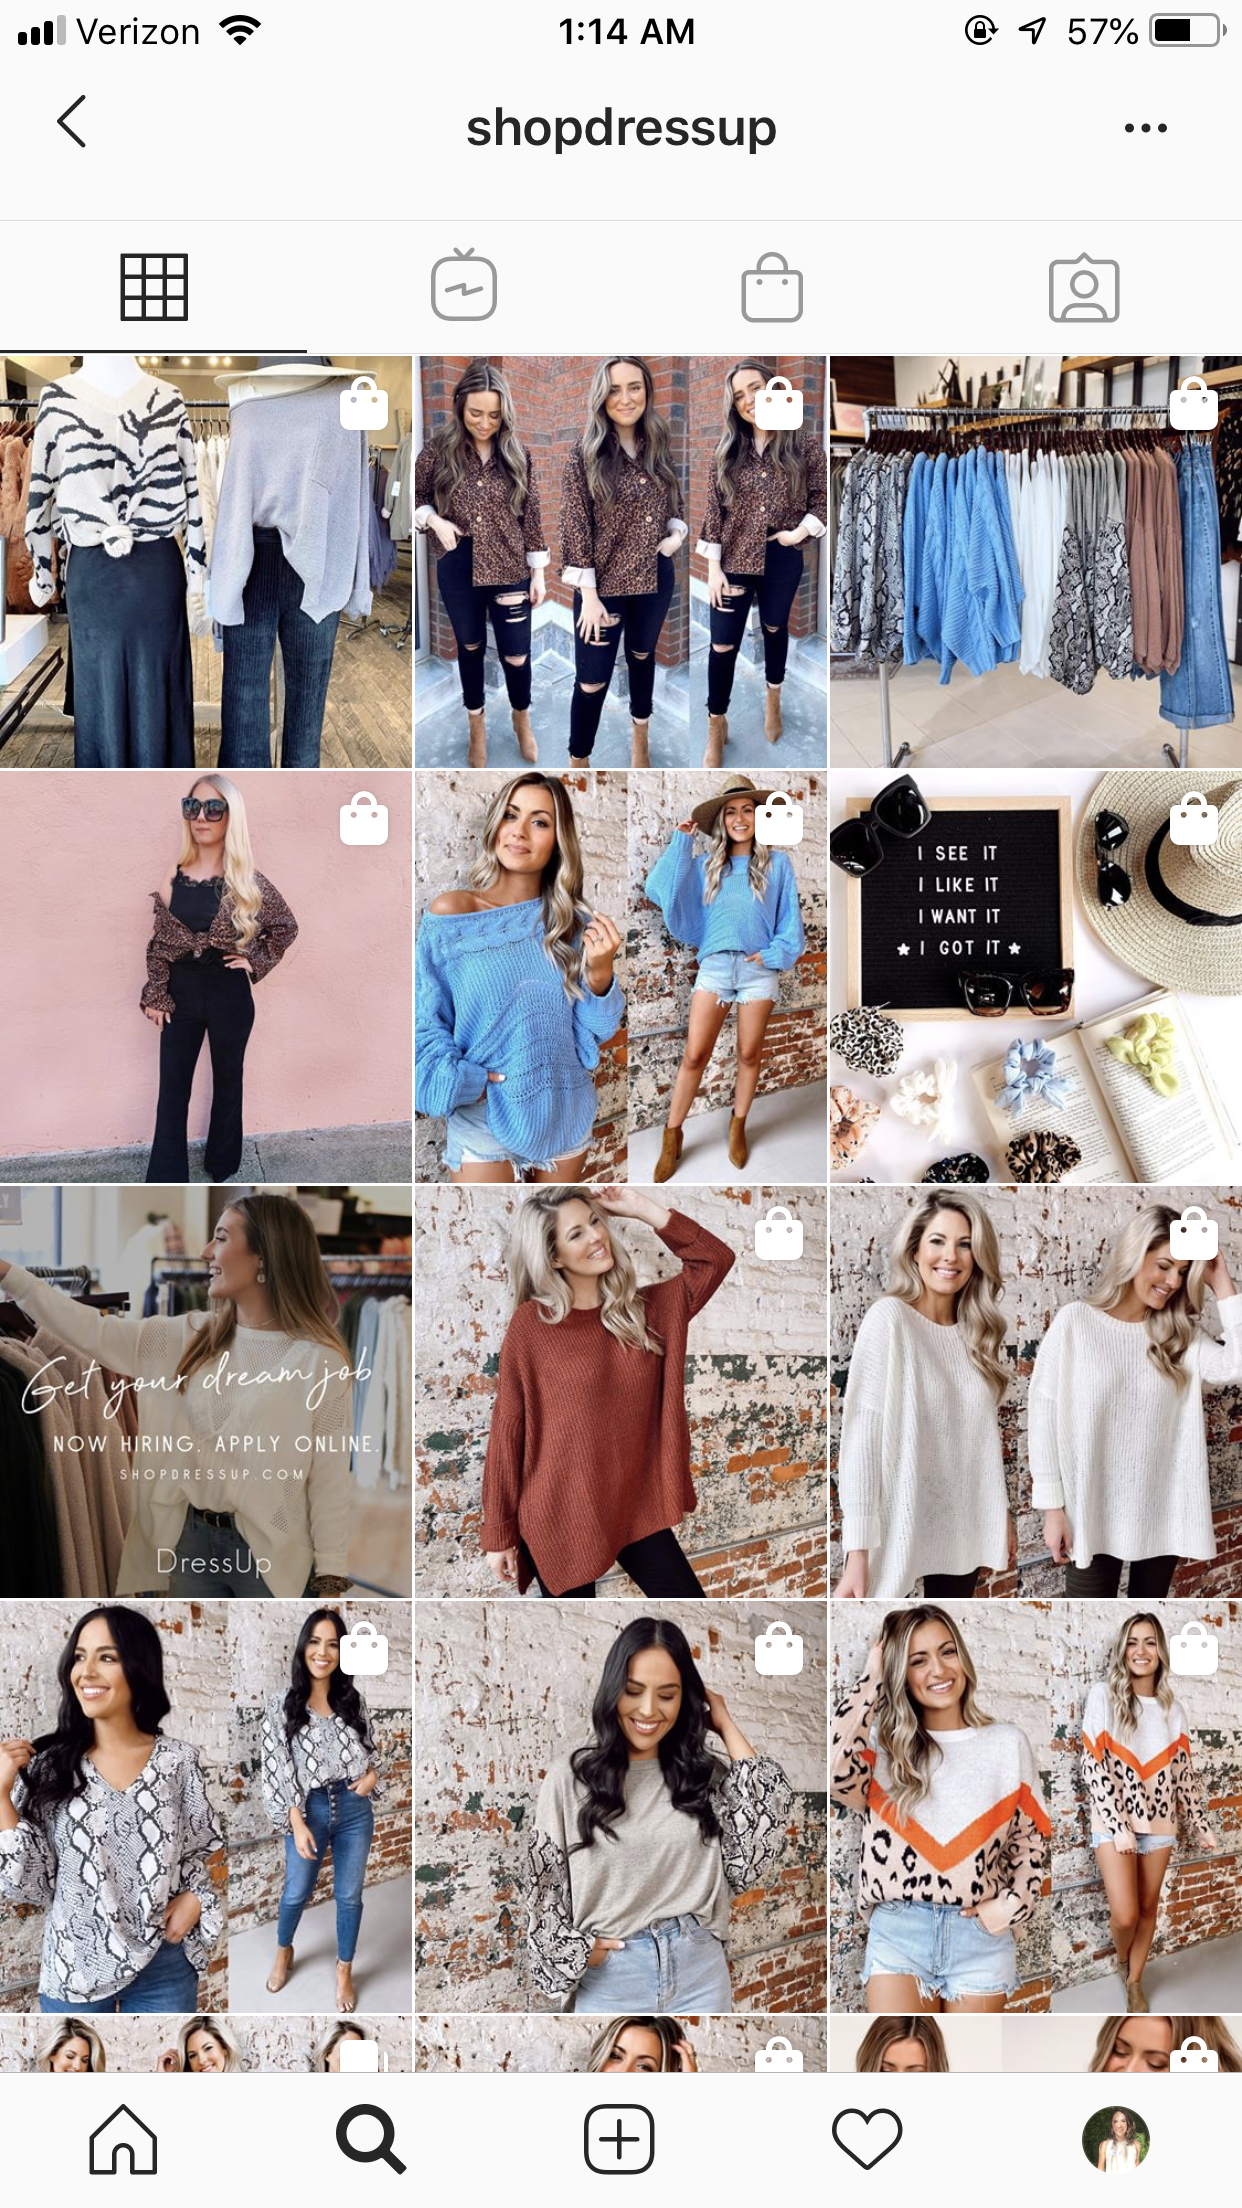 instagram hacks - turn your instagram feed into an online shop